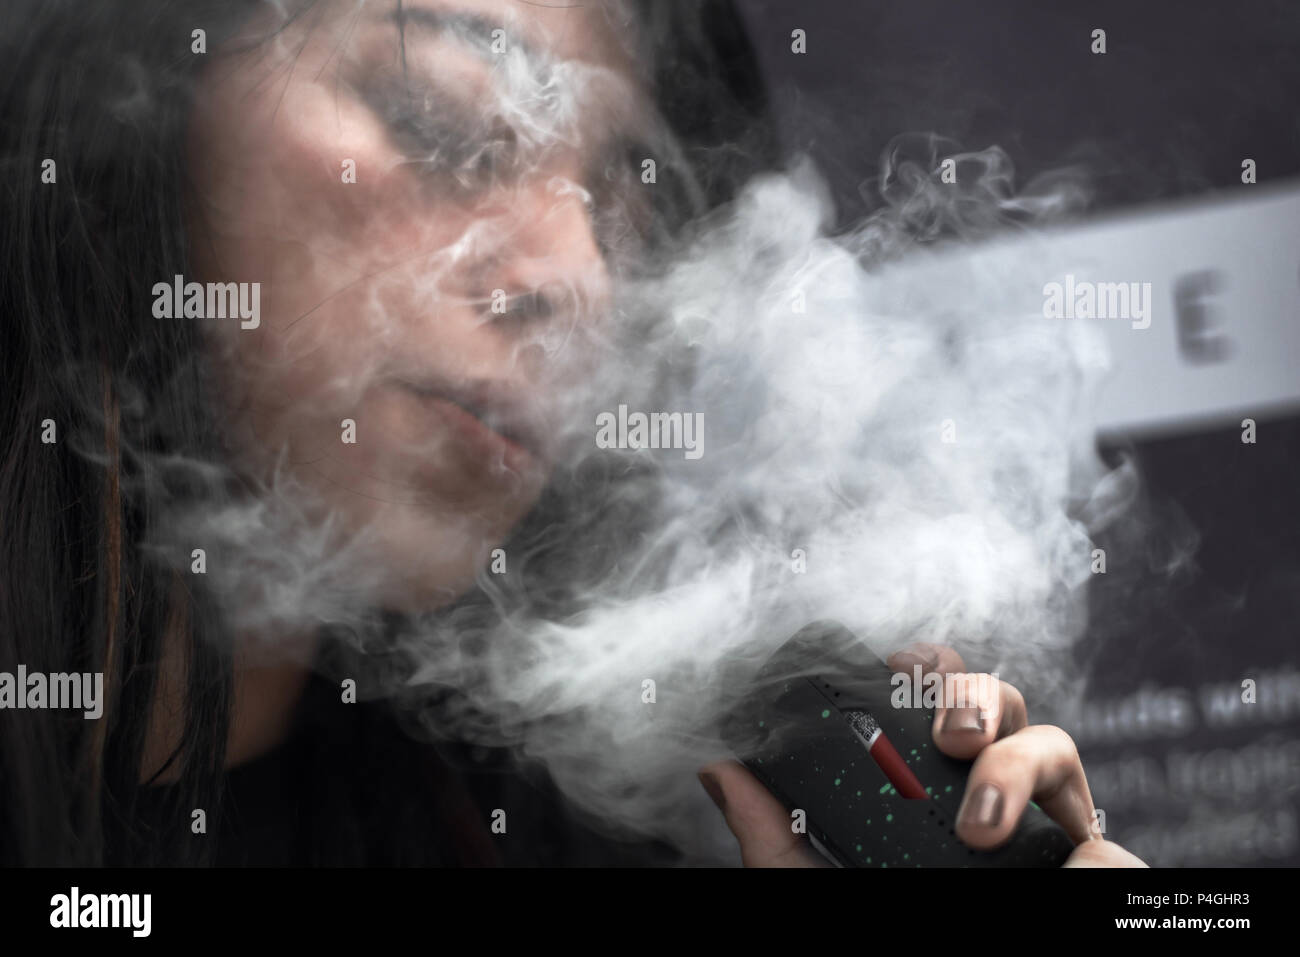 A woman vapes for a photo during Jakarta Vape Fest 2018 in South Jakarta, 6 May 2018. - Stock Image